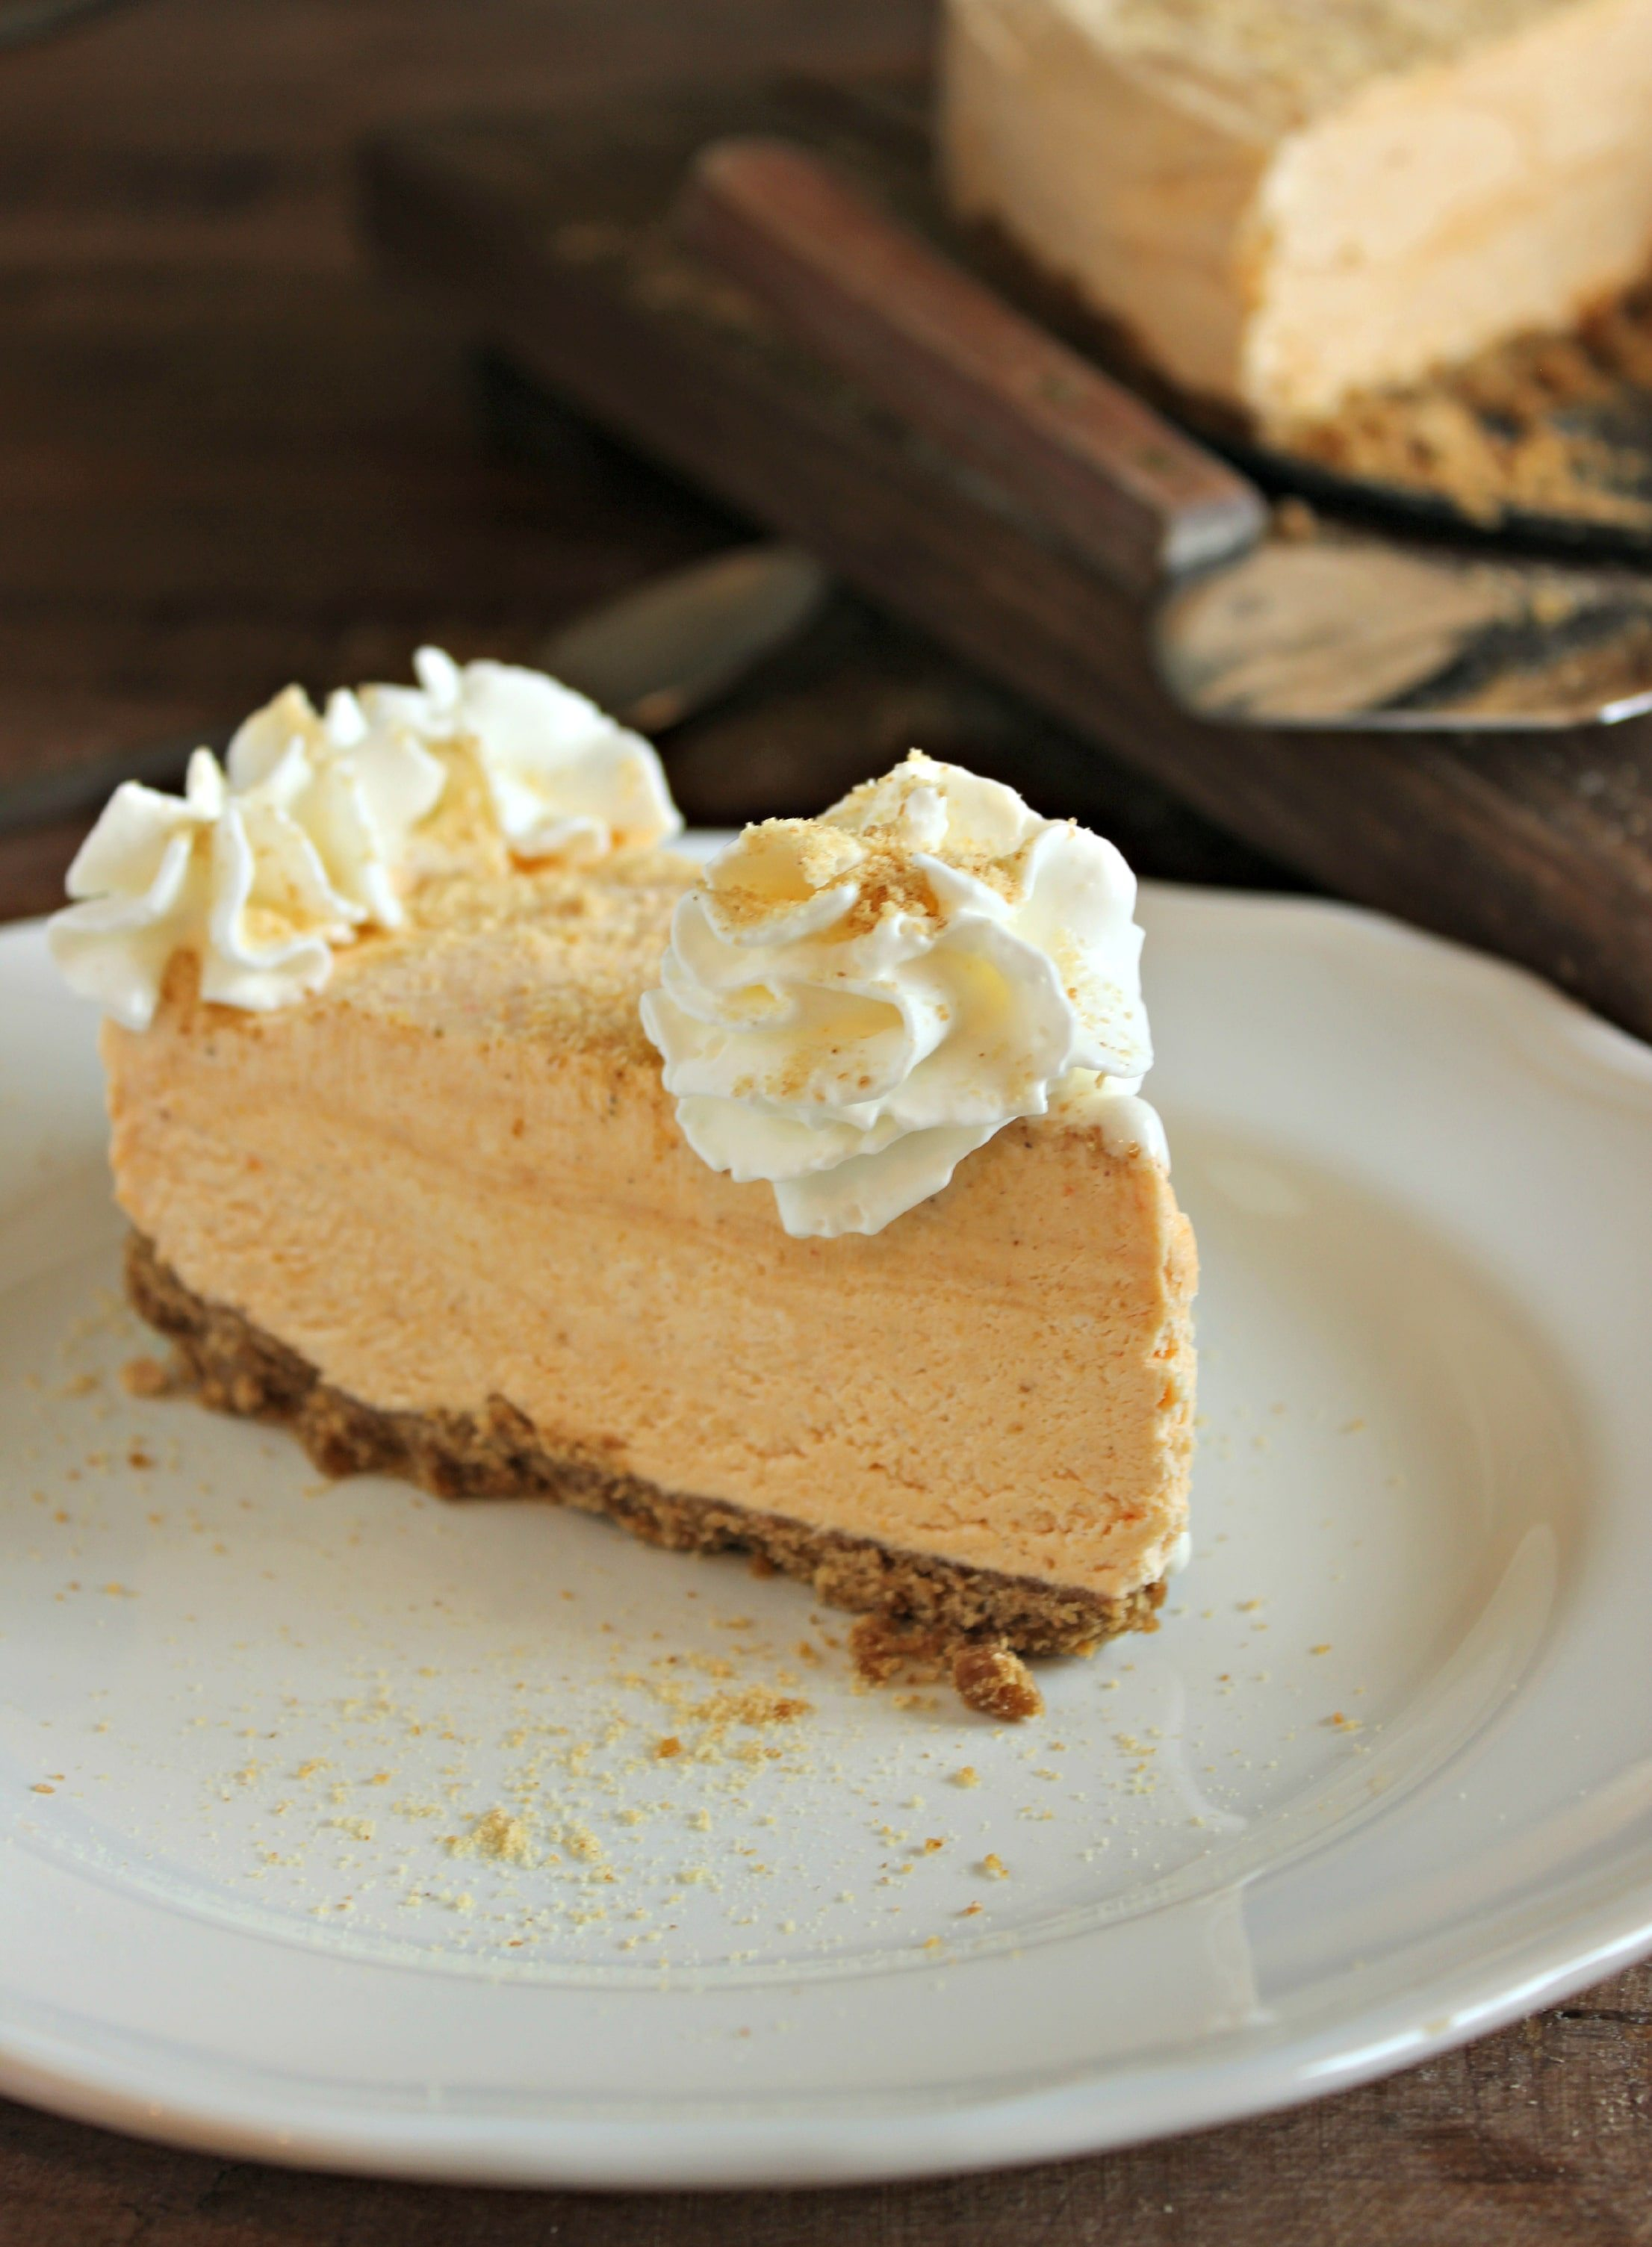 ... dessert. A creamy frozen cheesecake with a hint of pumpkin